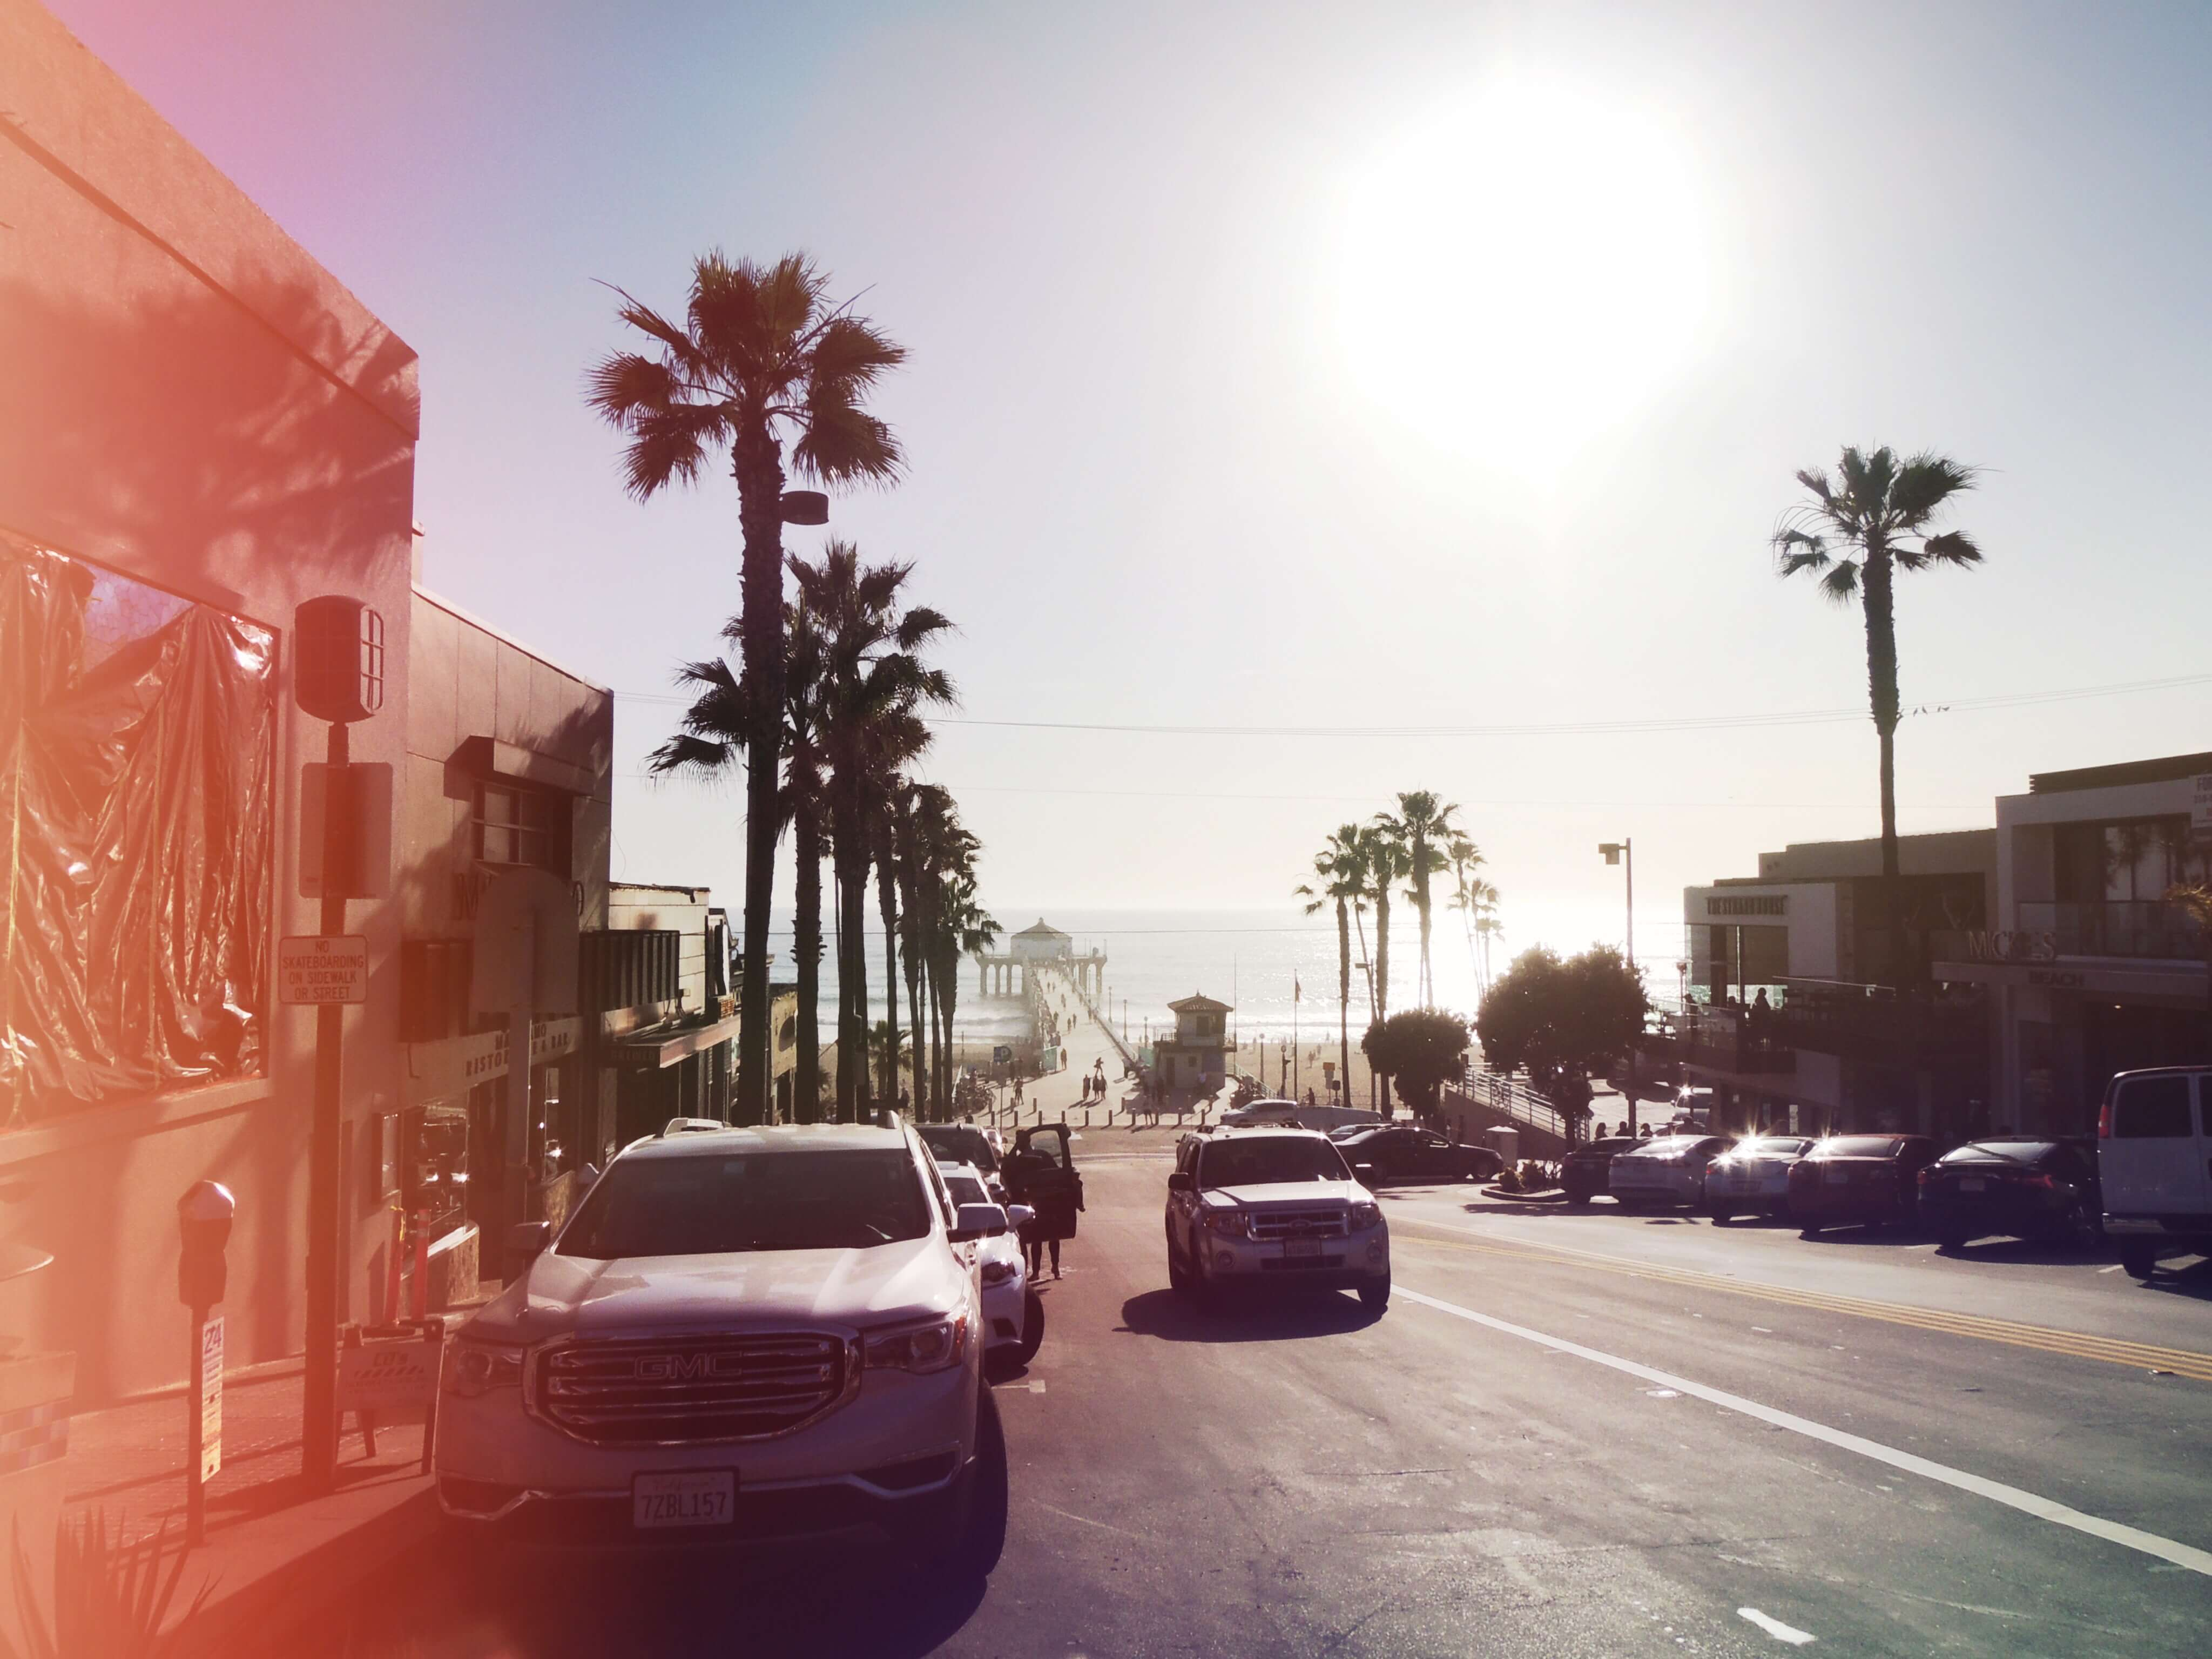 Manhattan Beach 🎬 Mes 10 endroits préférés à Los Angeles. Carte des quartiers Los Angeles, sur Goodie Mood, le blog Feel Good et Créativité #losAngeles #expatlife #changerdevie #venice #santaMonica #theGrove #beverlyHills